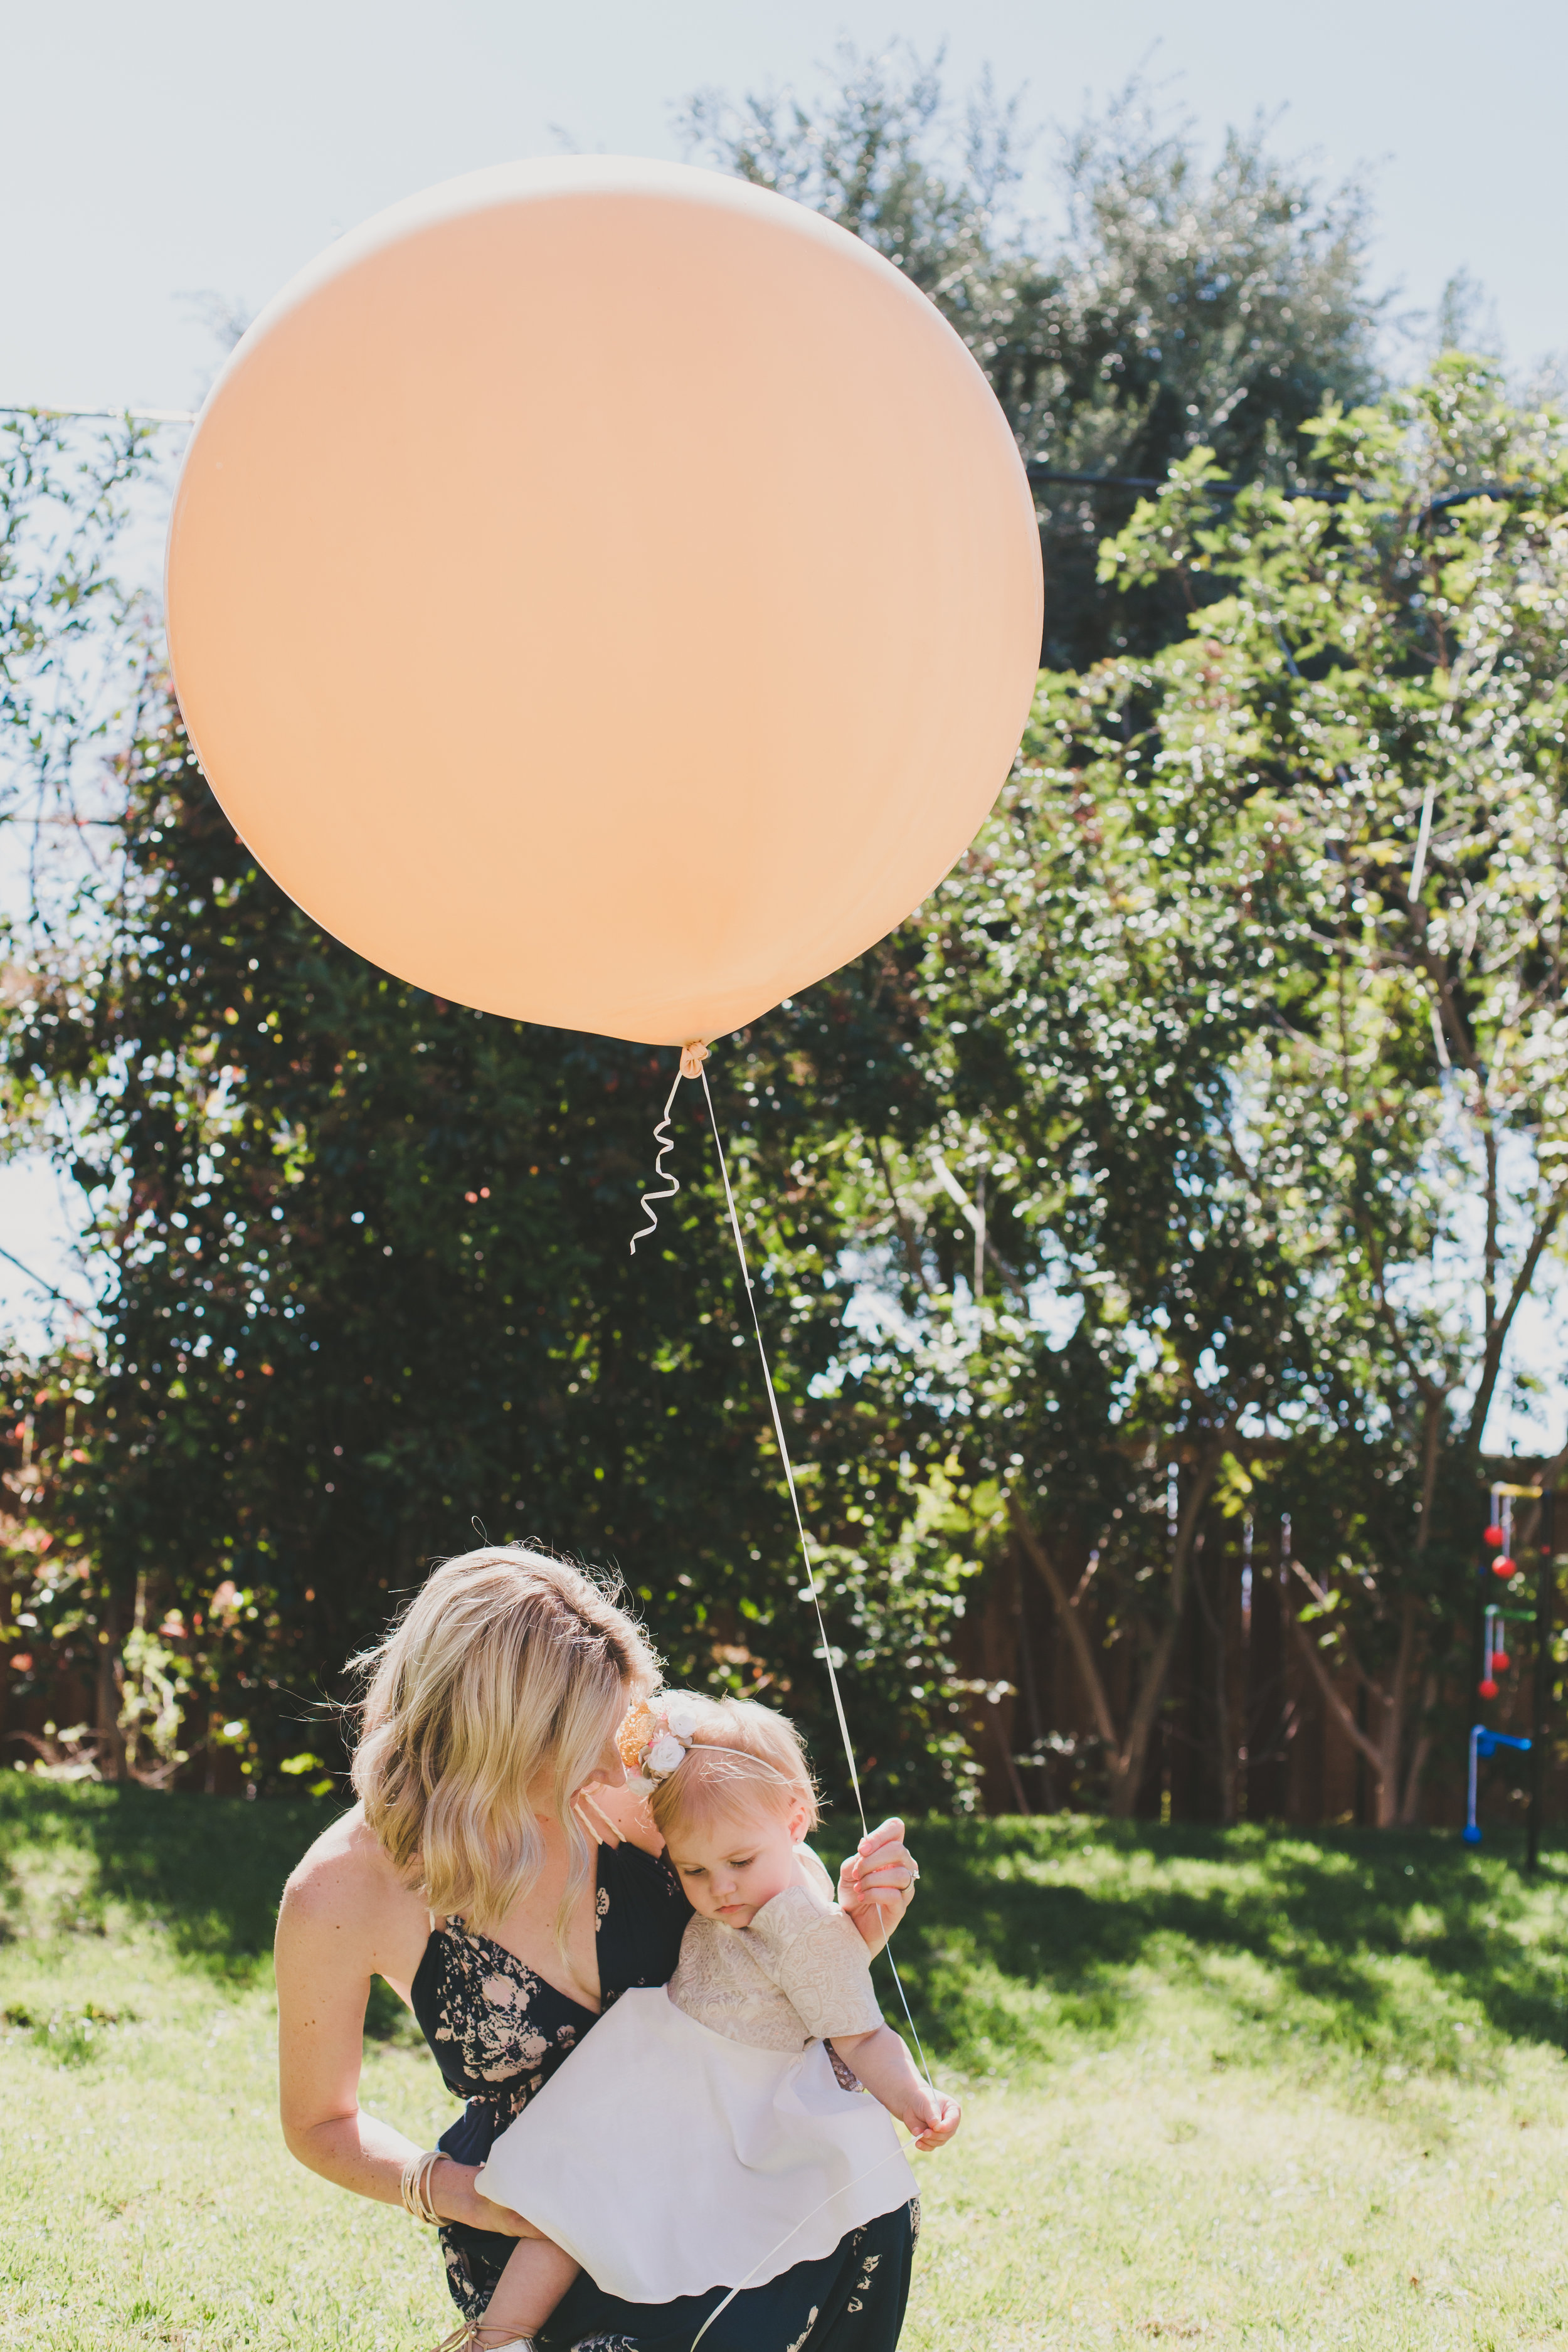 First Birthday Party Ideas - A Vintage Chic Pi Day Themed 1st Birthday Party   Ava's First Birthday